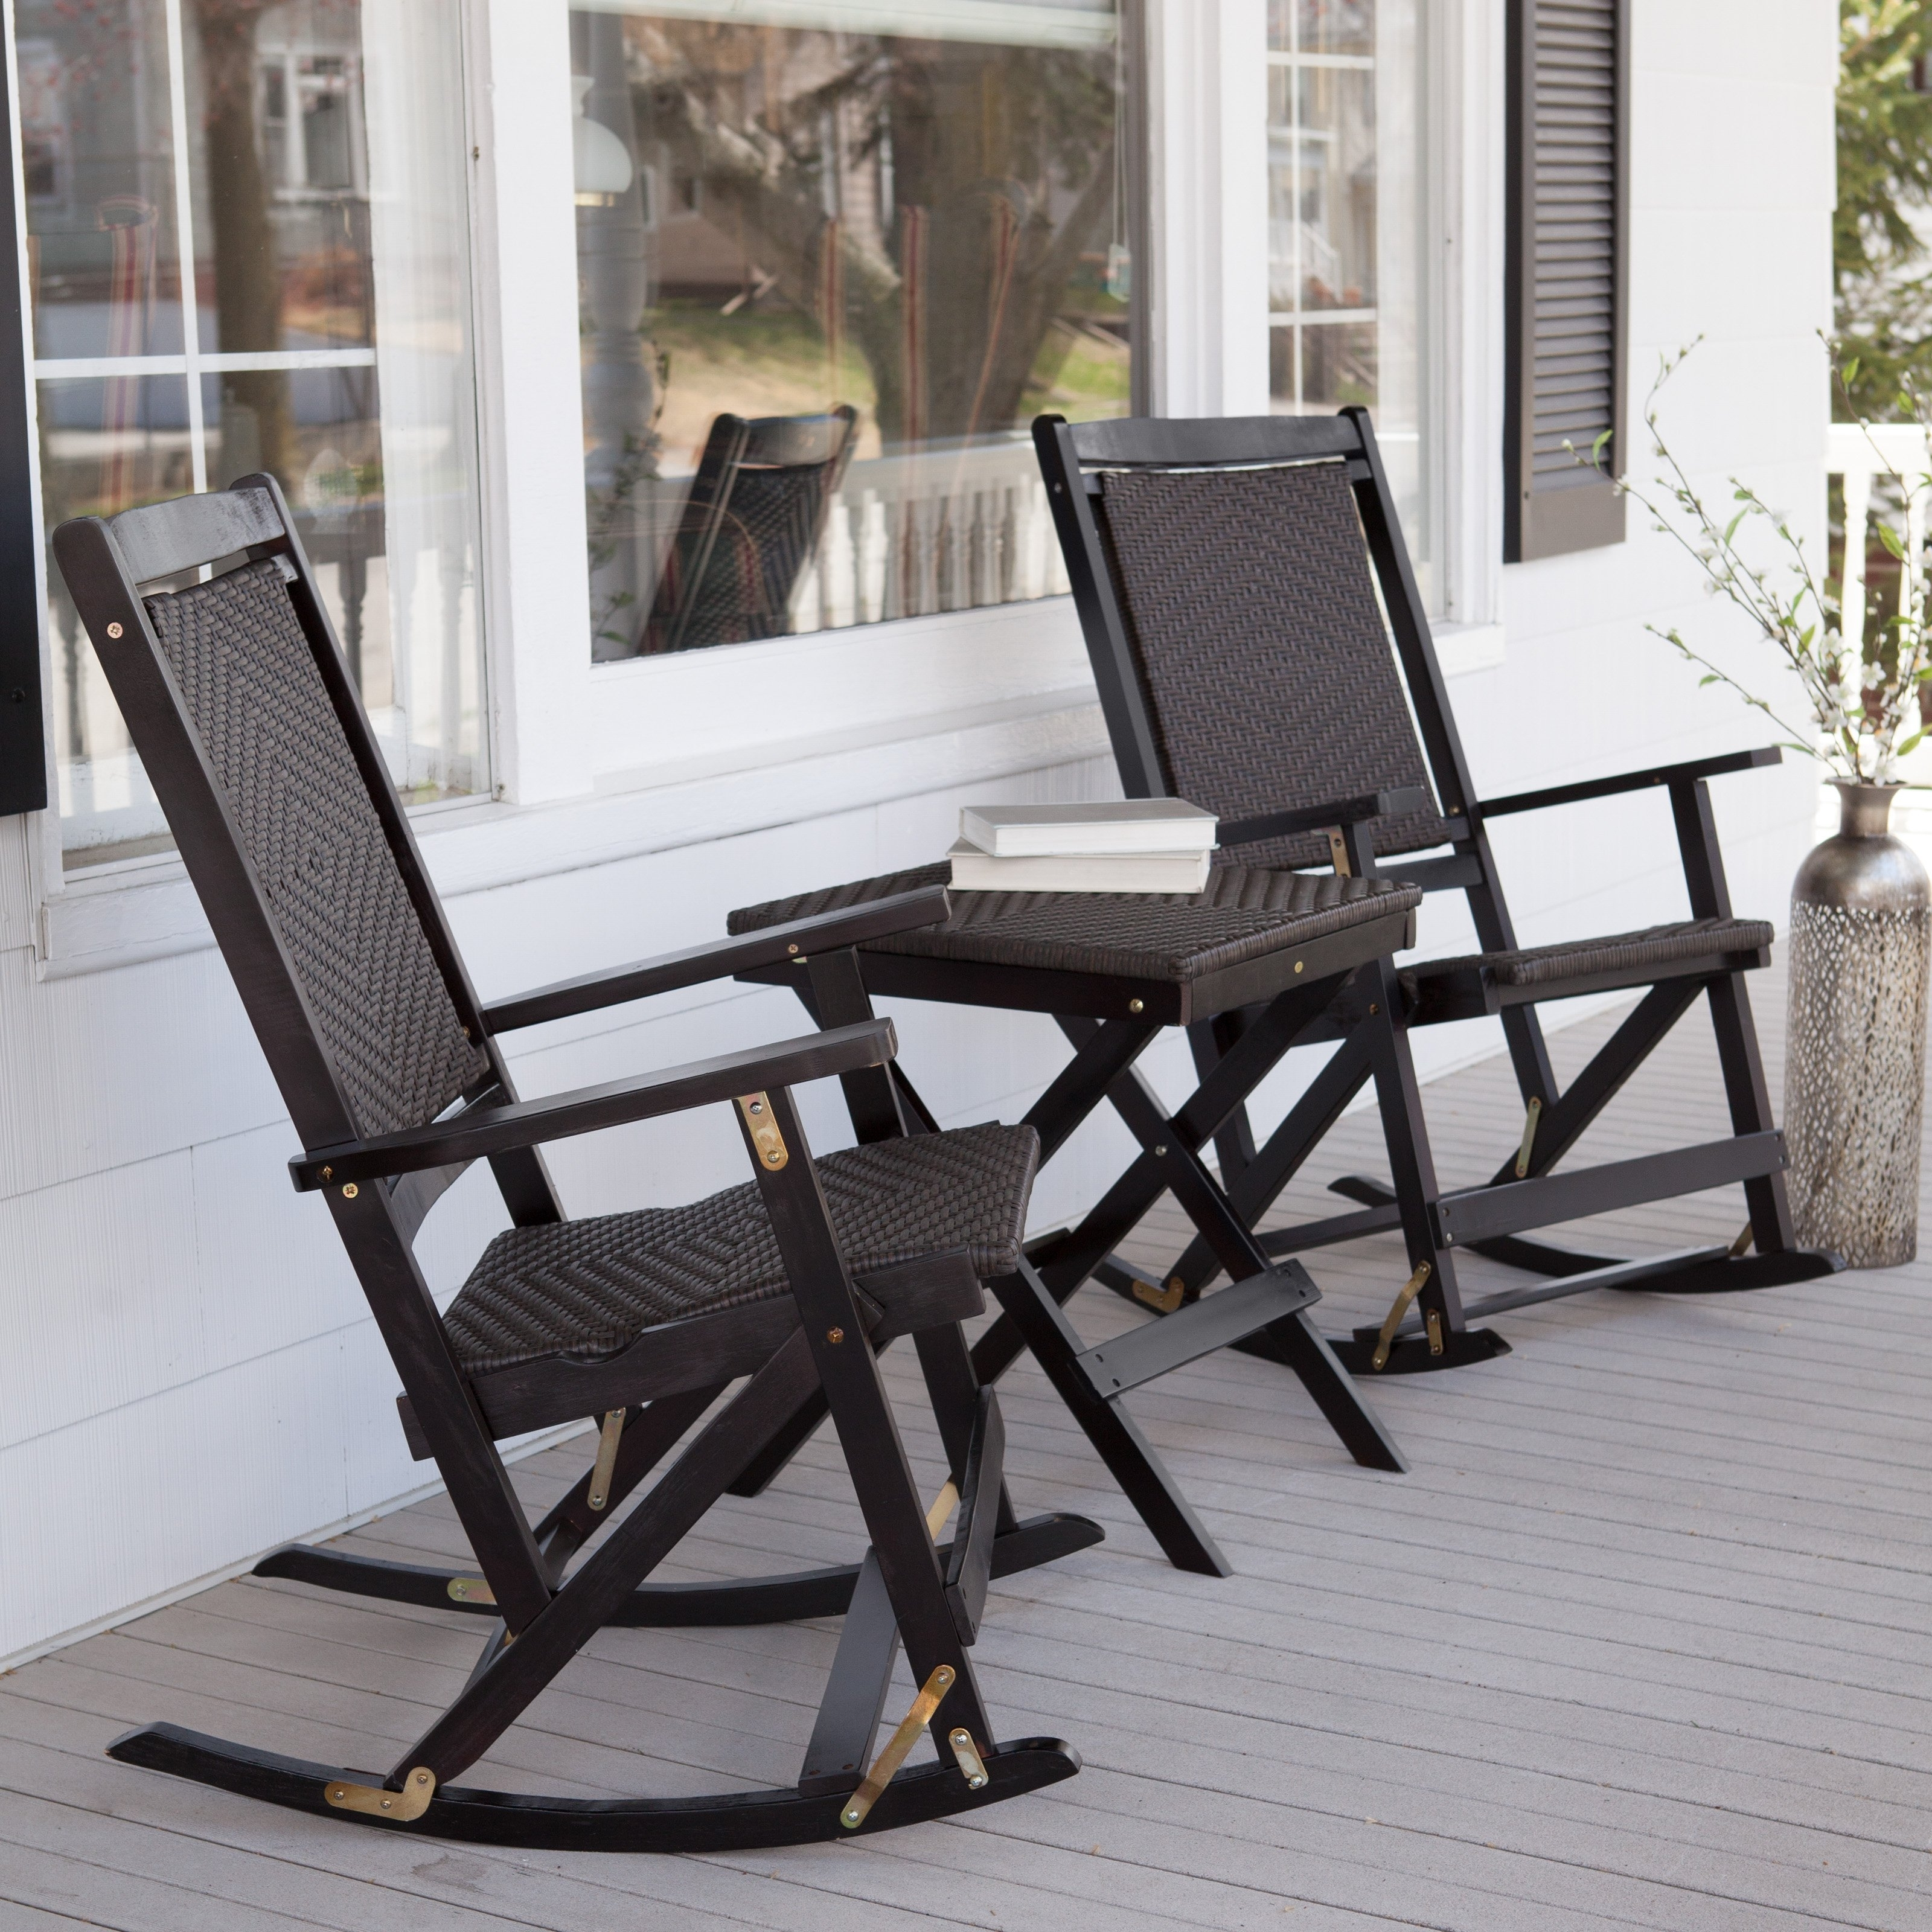 Outdoor Wicker Rocking Chair Set – Outdoor Designs Inside Most Current Outside Rocking Chair Sets (View 7 of 20)